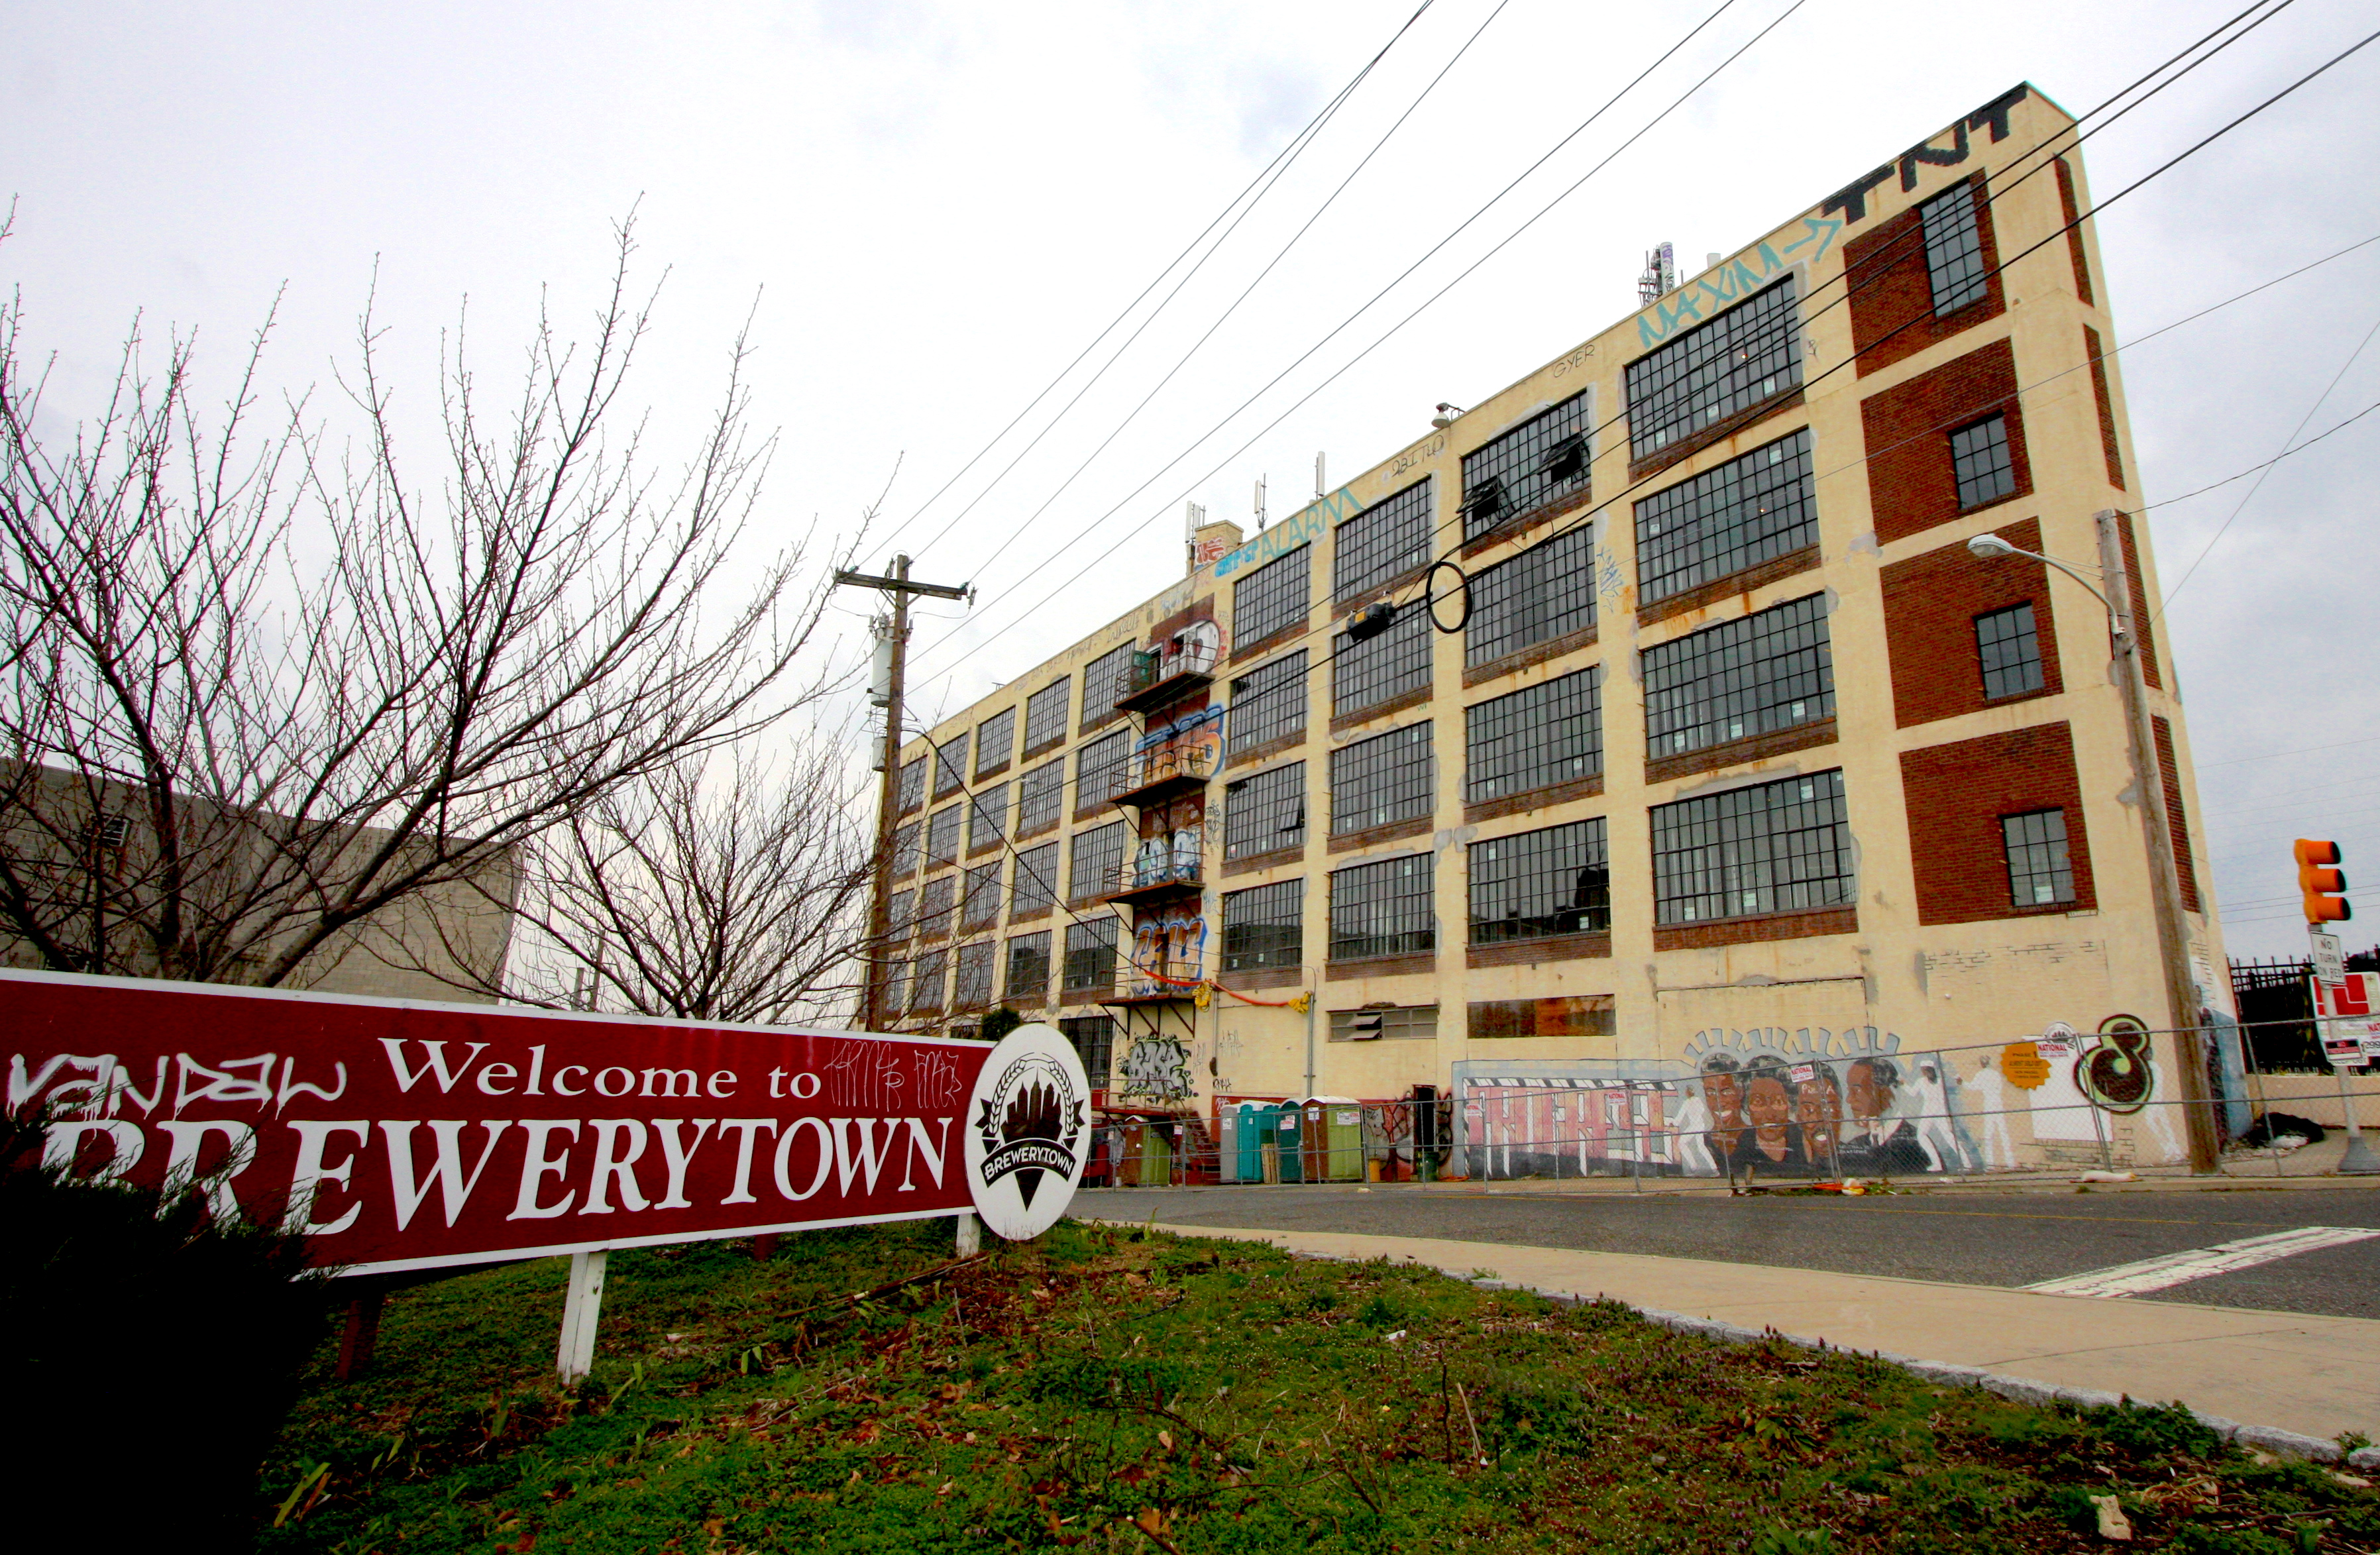 The graffiti-laden Pyramid Electric building in Brewerytown is being converted into 50 rental units and commercial space.